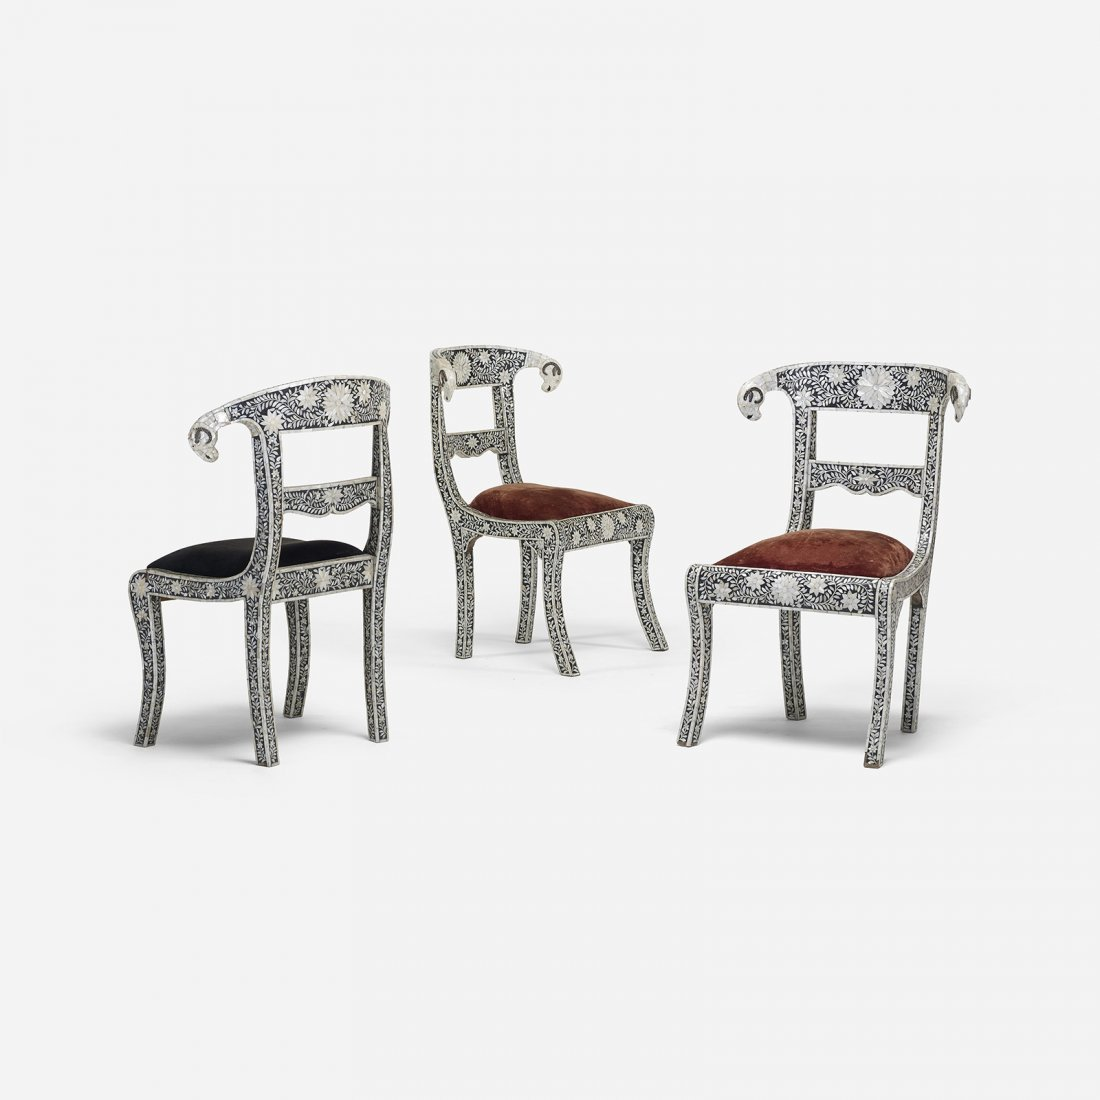 Indian chairs, set of three